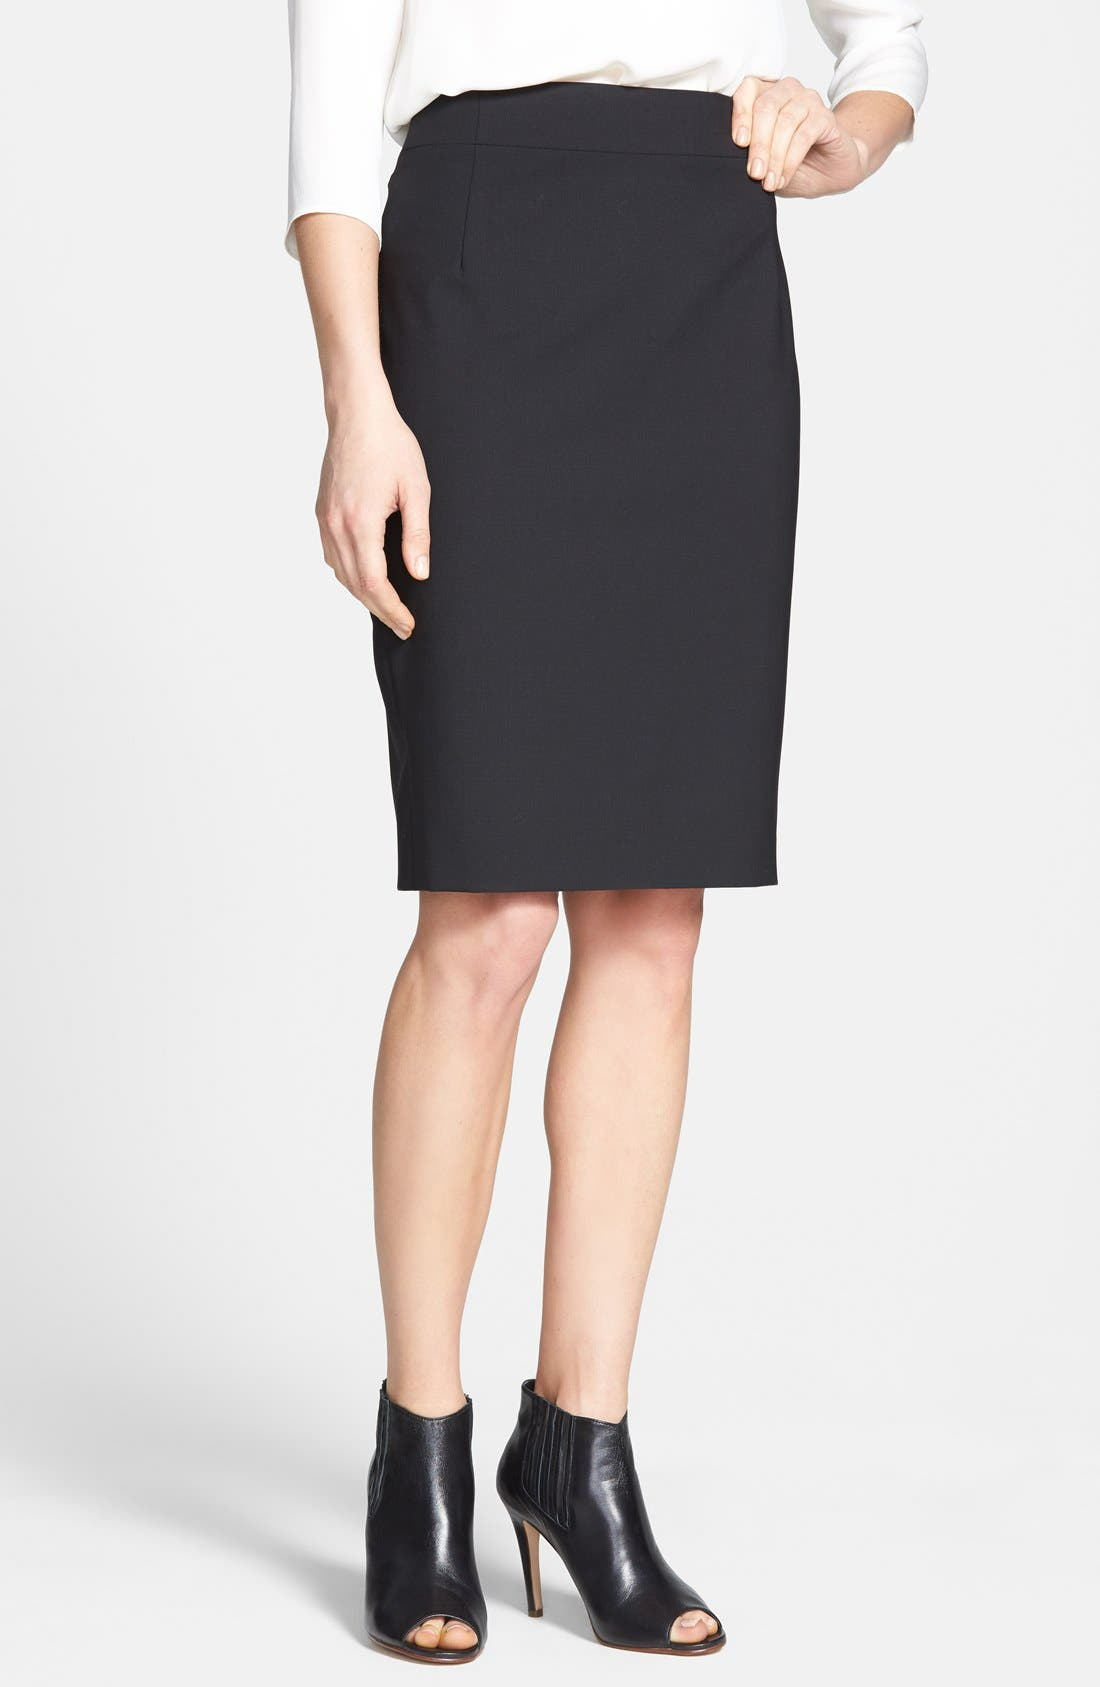 Alternate Image 1 Selected - Theory 'Joanie' Stretch Wool Pencil Skirt